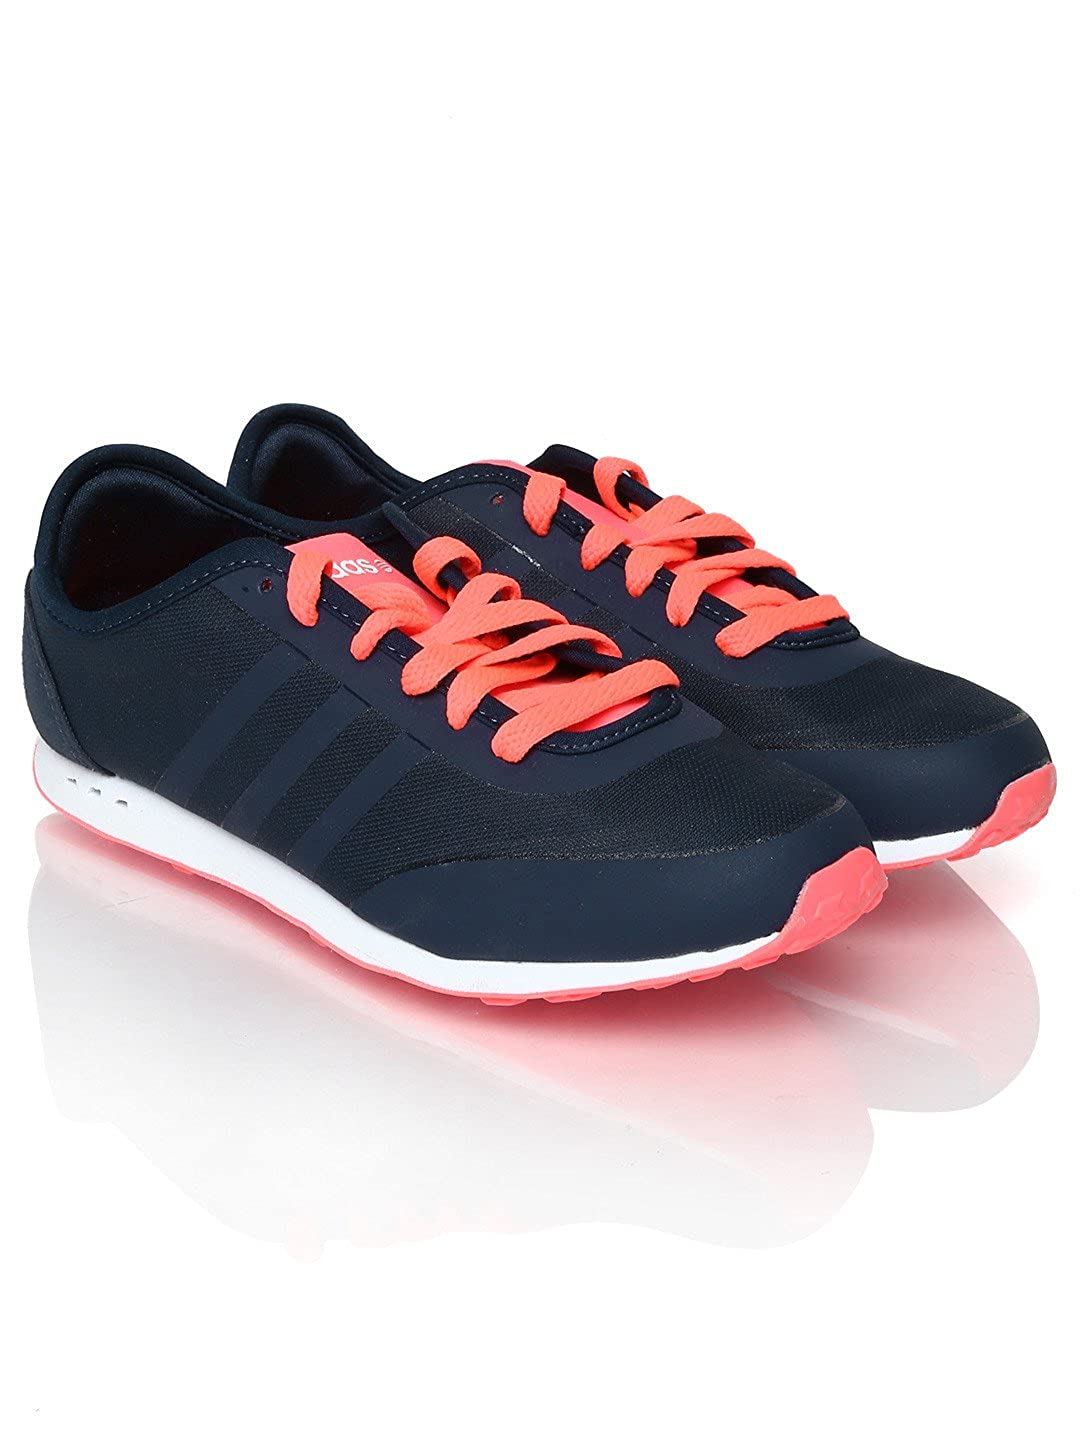 Adidas NEO Unisex Navy Groove TM Flat Shoes (8UK): Amazon.in